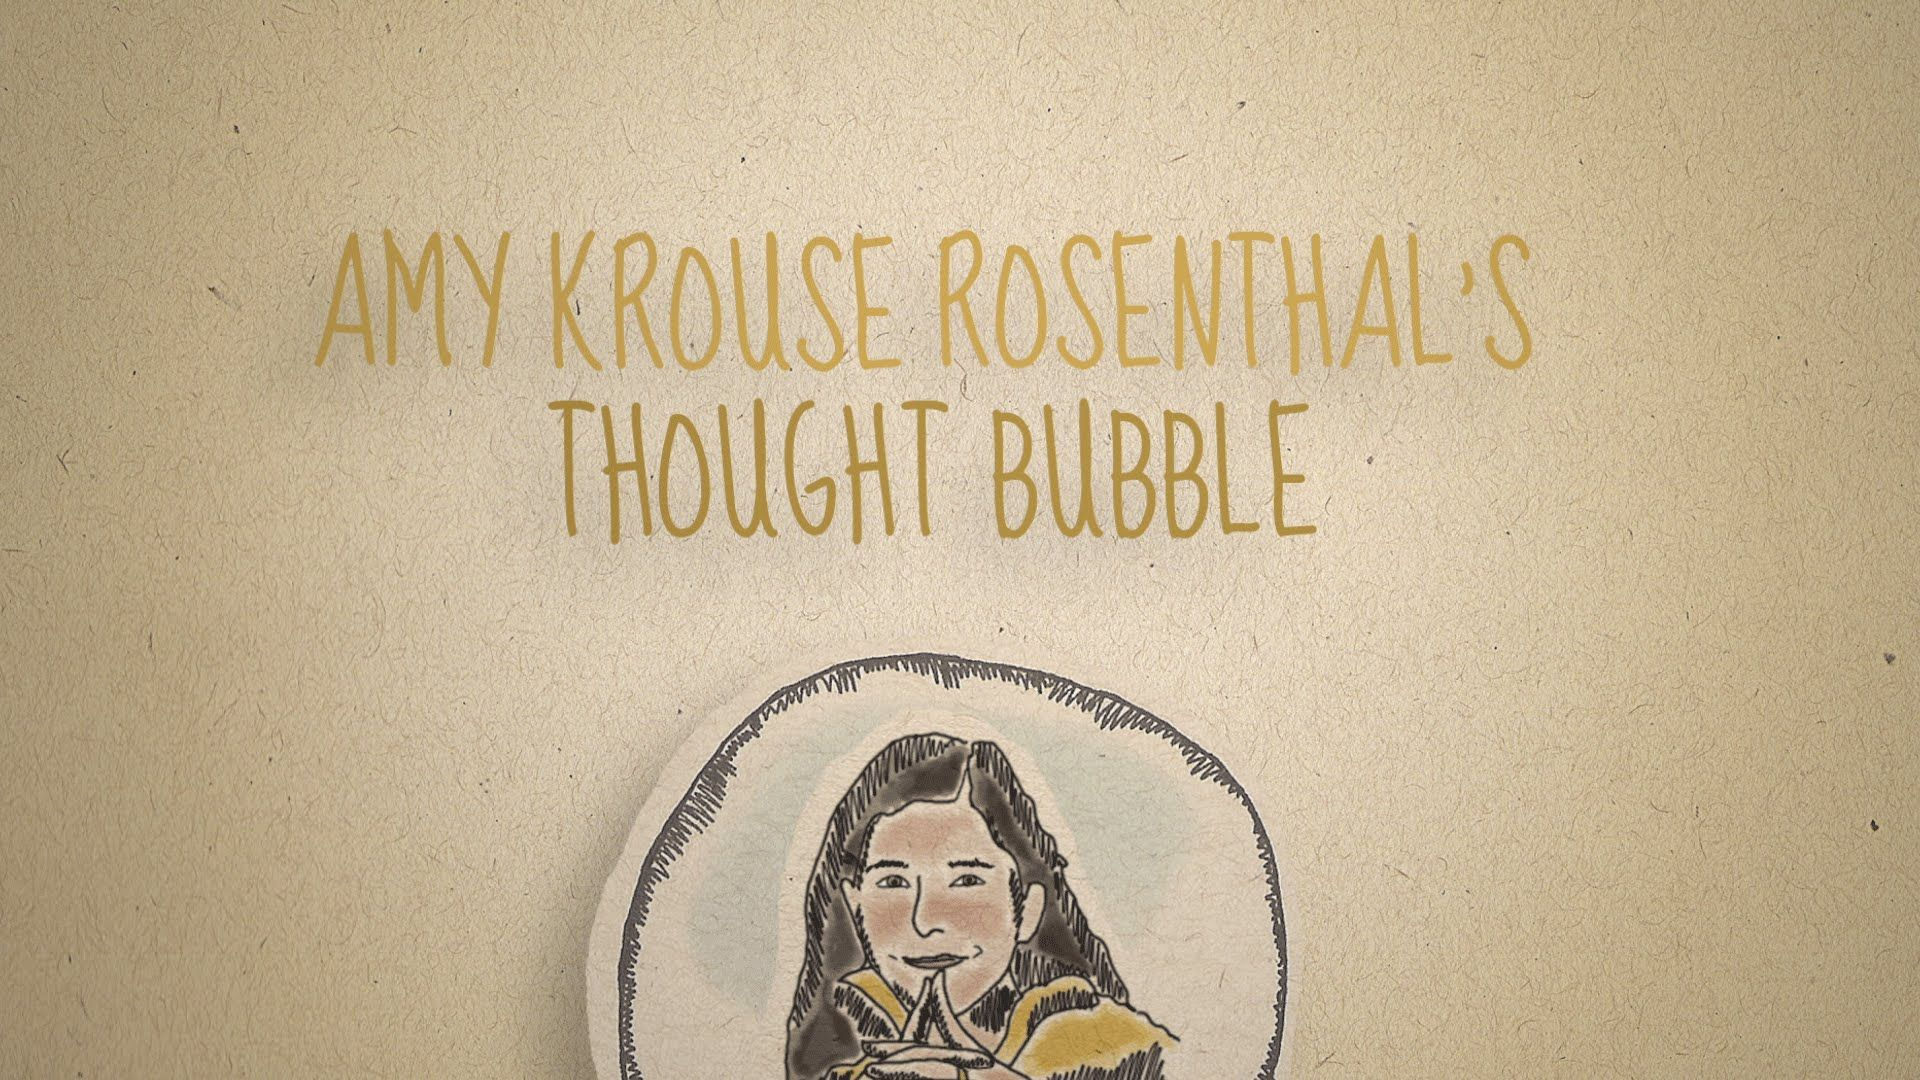 Amy Krouse Rosenthal S Thought Bubble Kindness